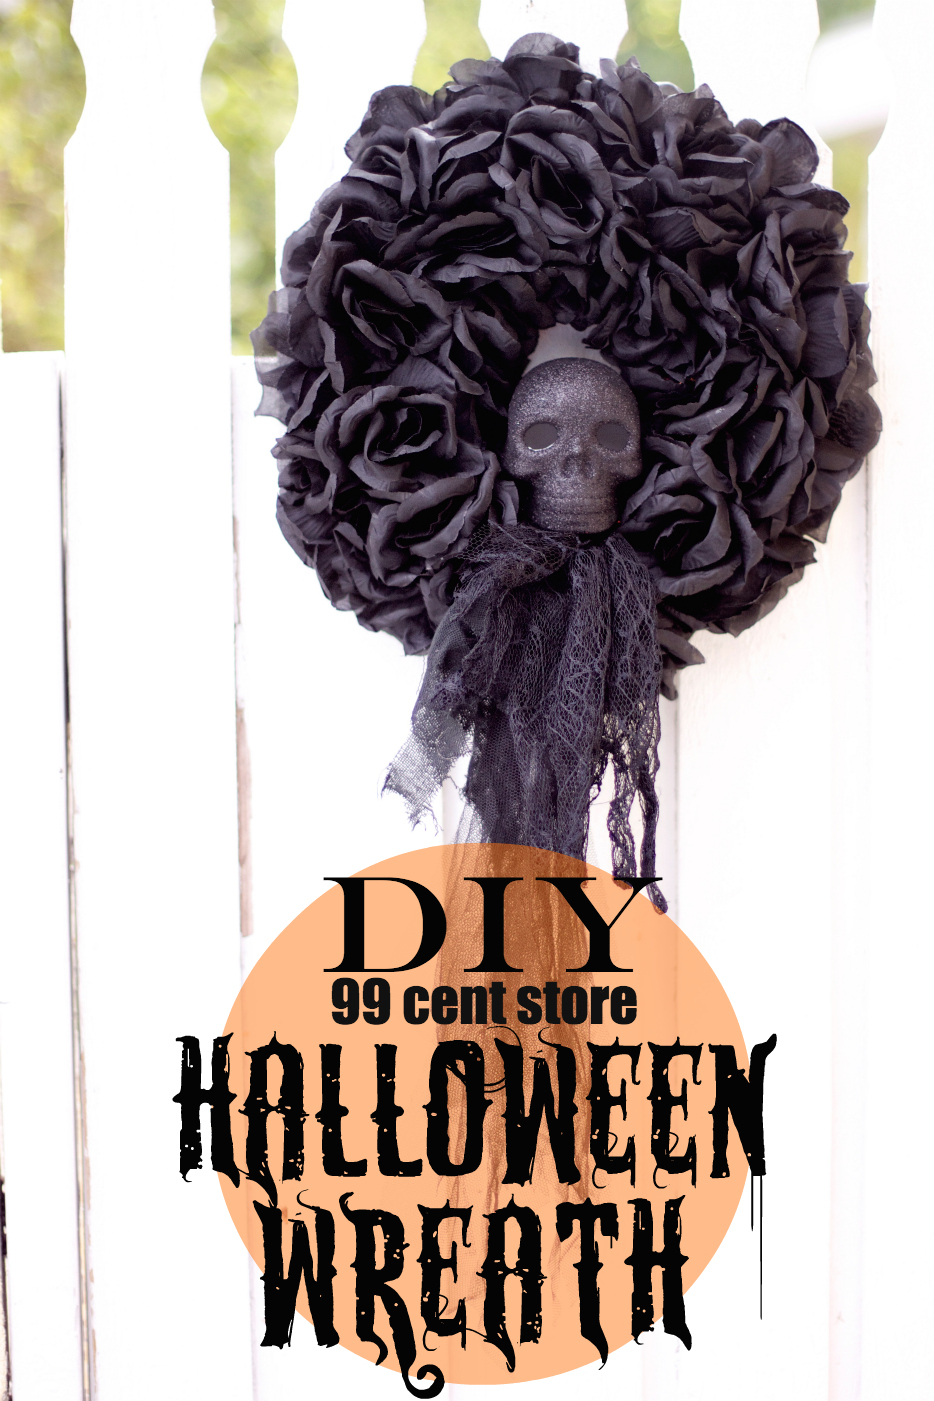 halloweenwreath.jpg